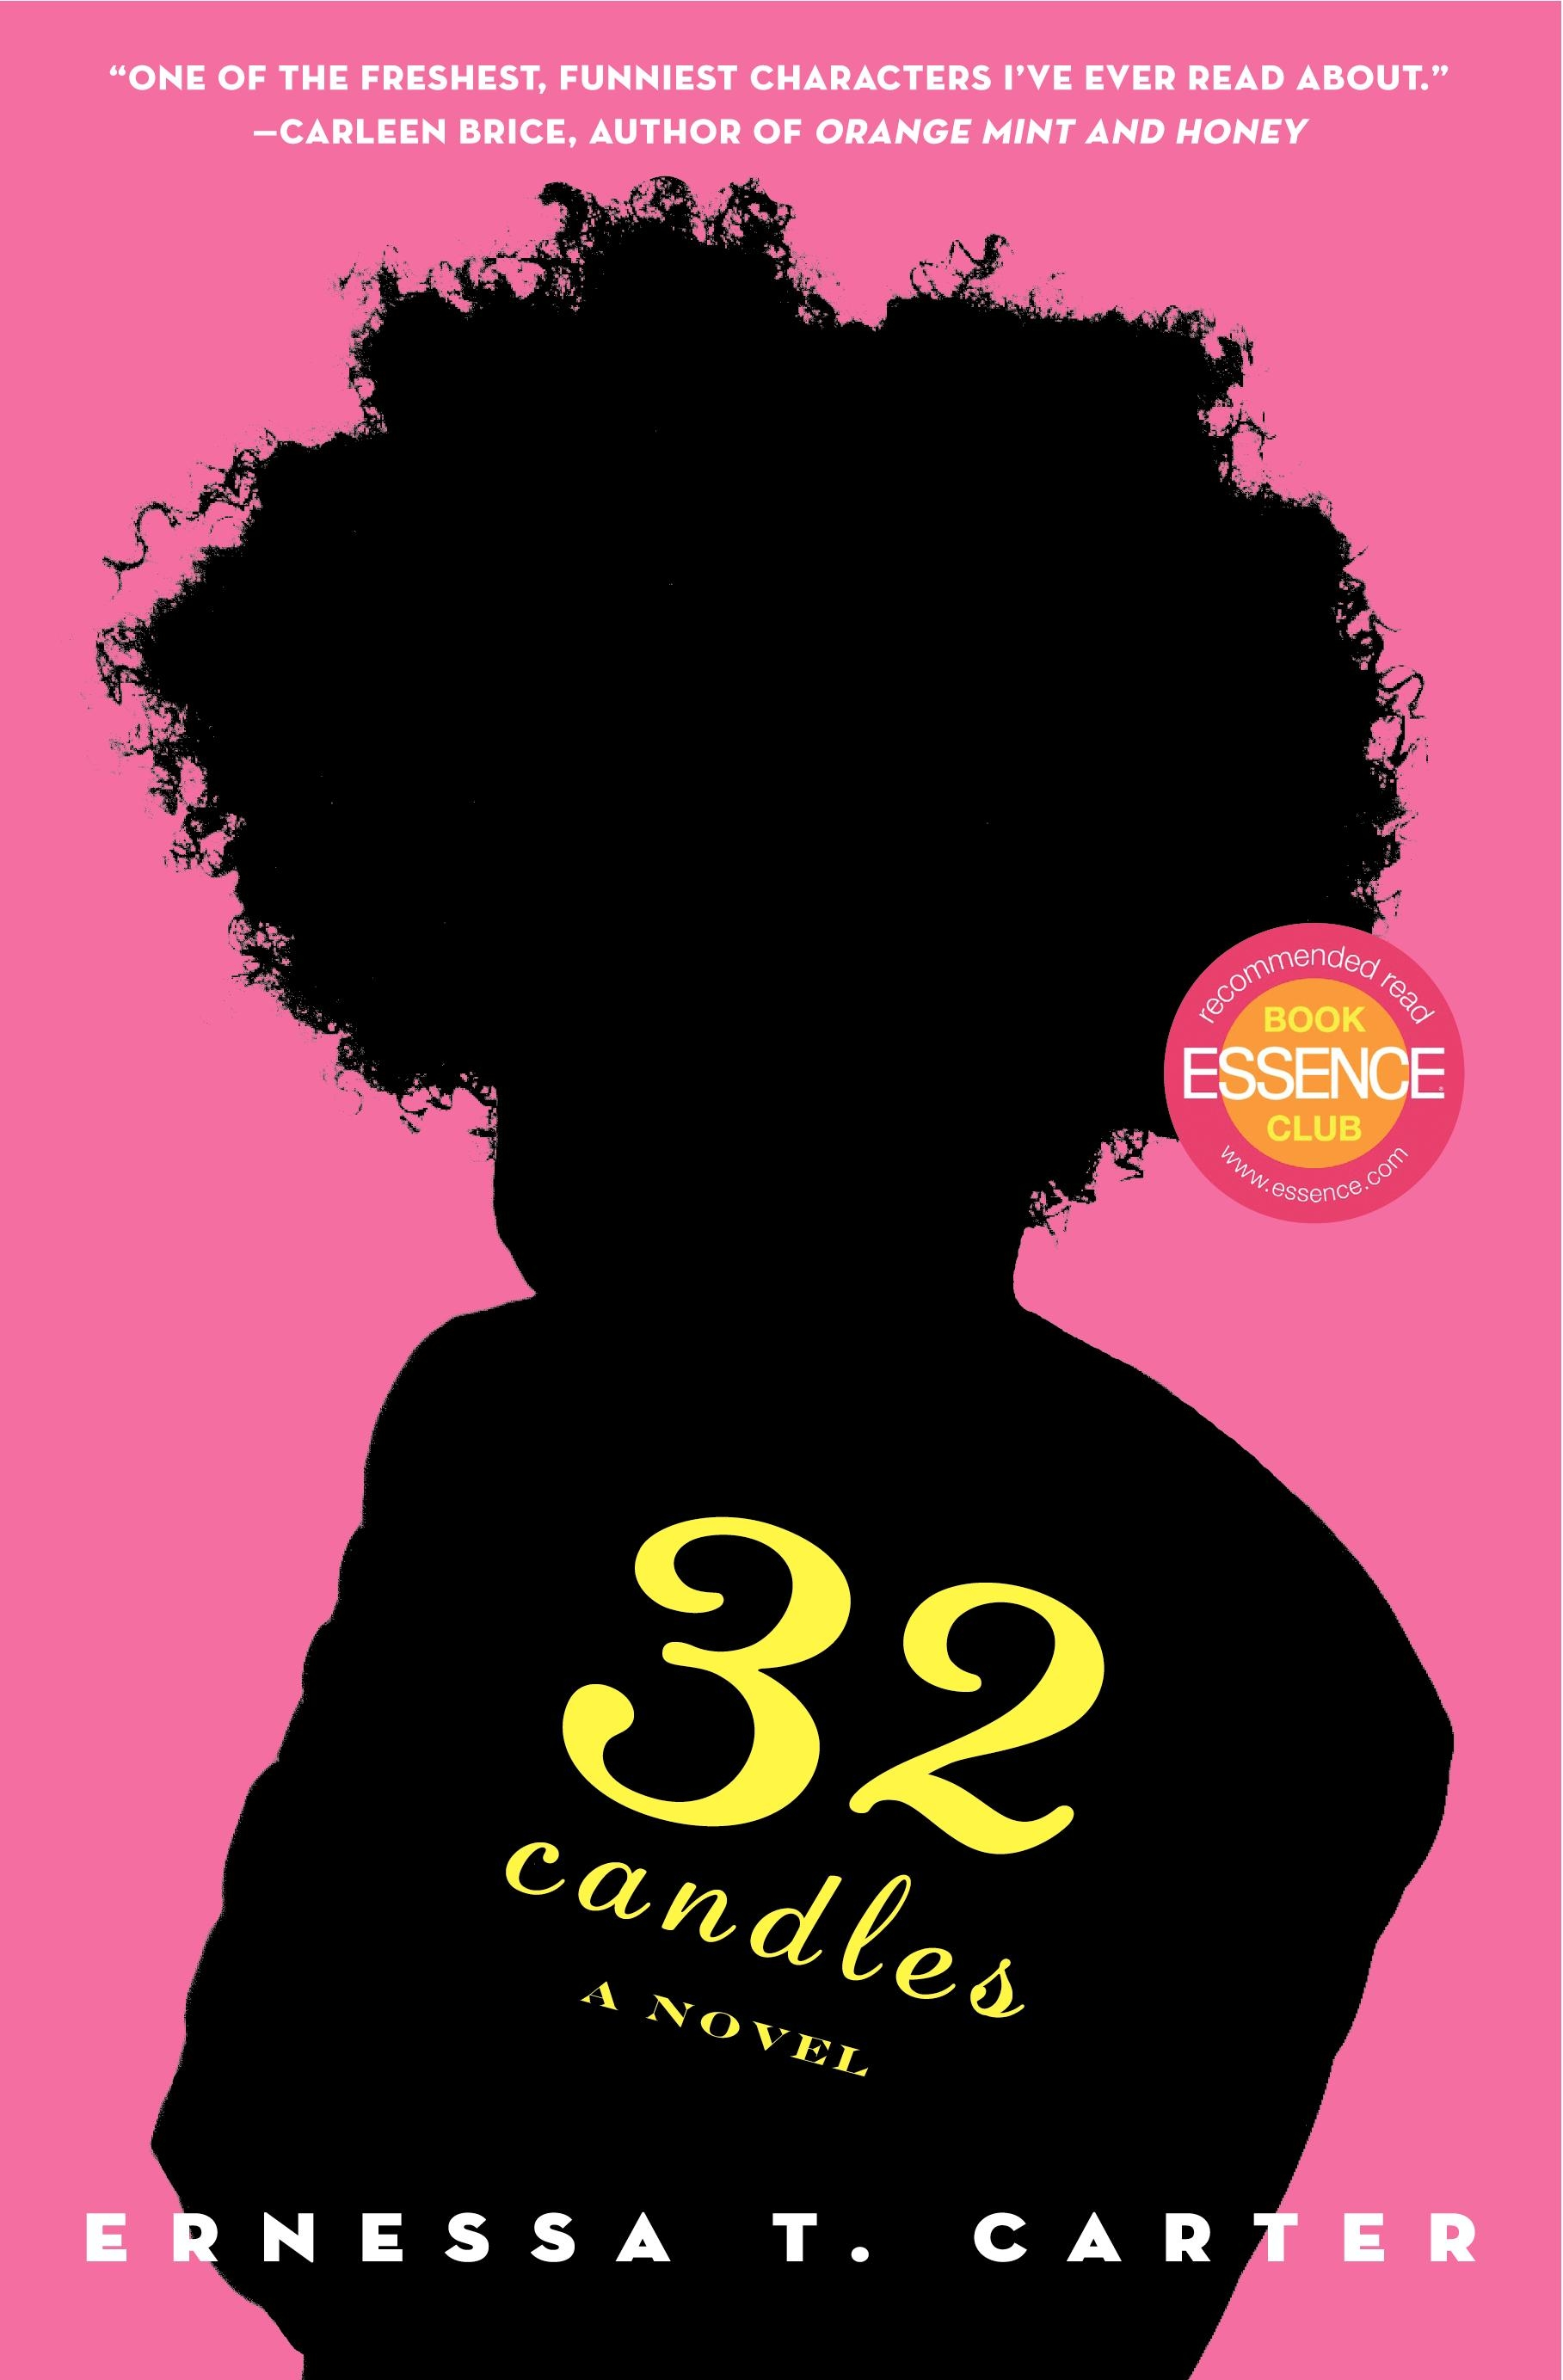 One More Thing Before We Go: Your Last Chance to Get a 32 CANDLES T-shirt!